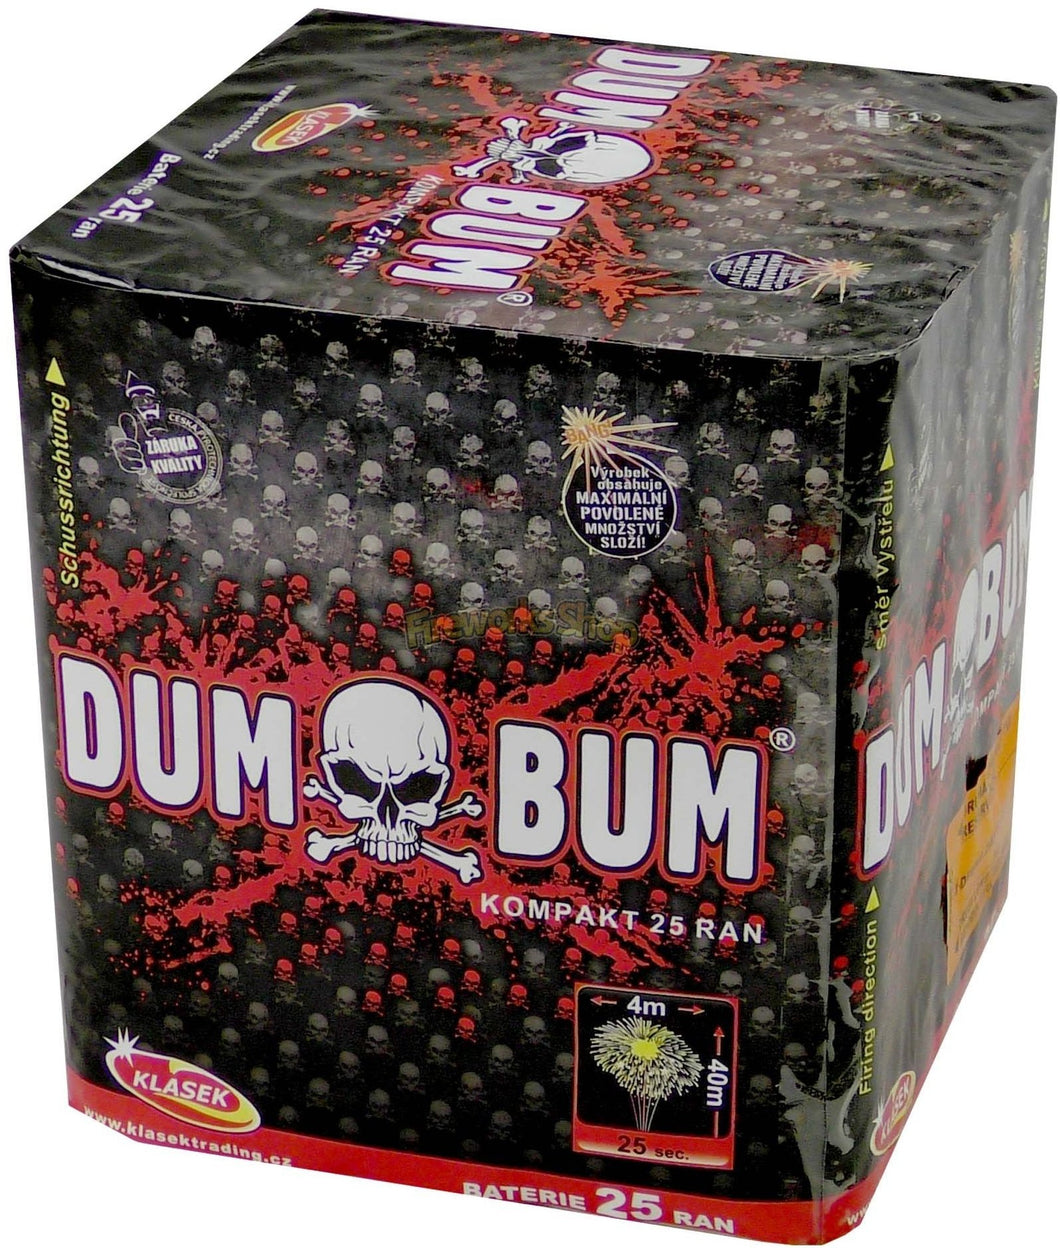 Dum Bum 25 shot barrage VERY LOUD!!